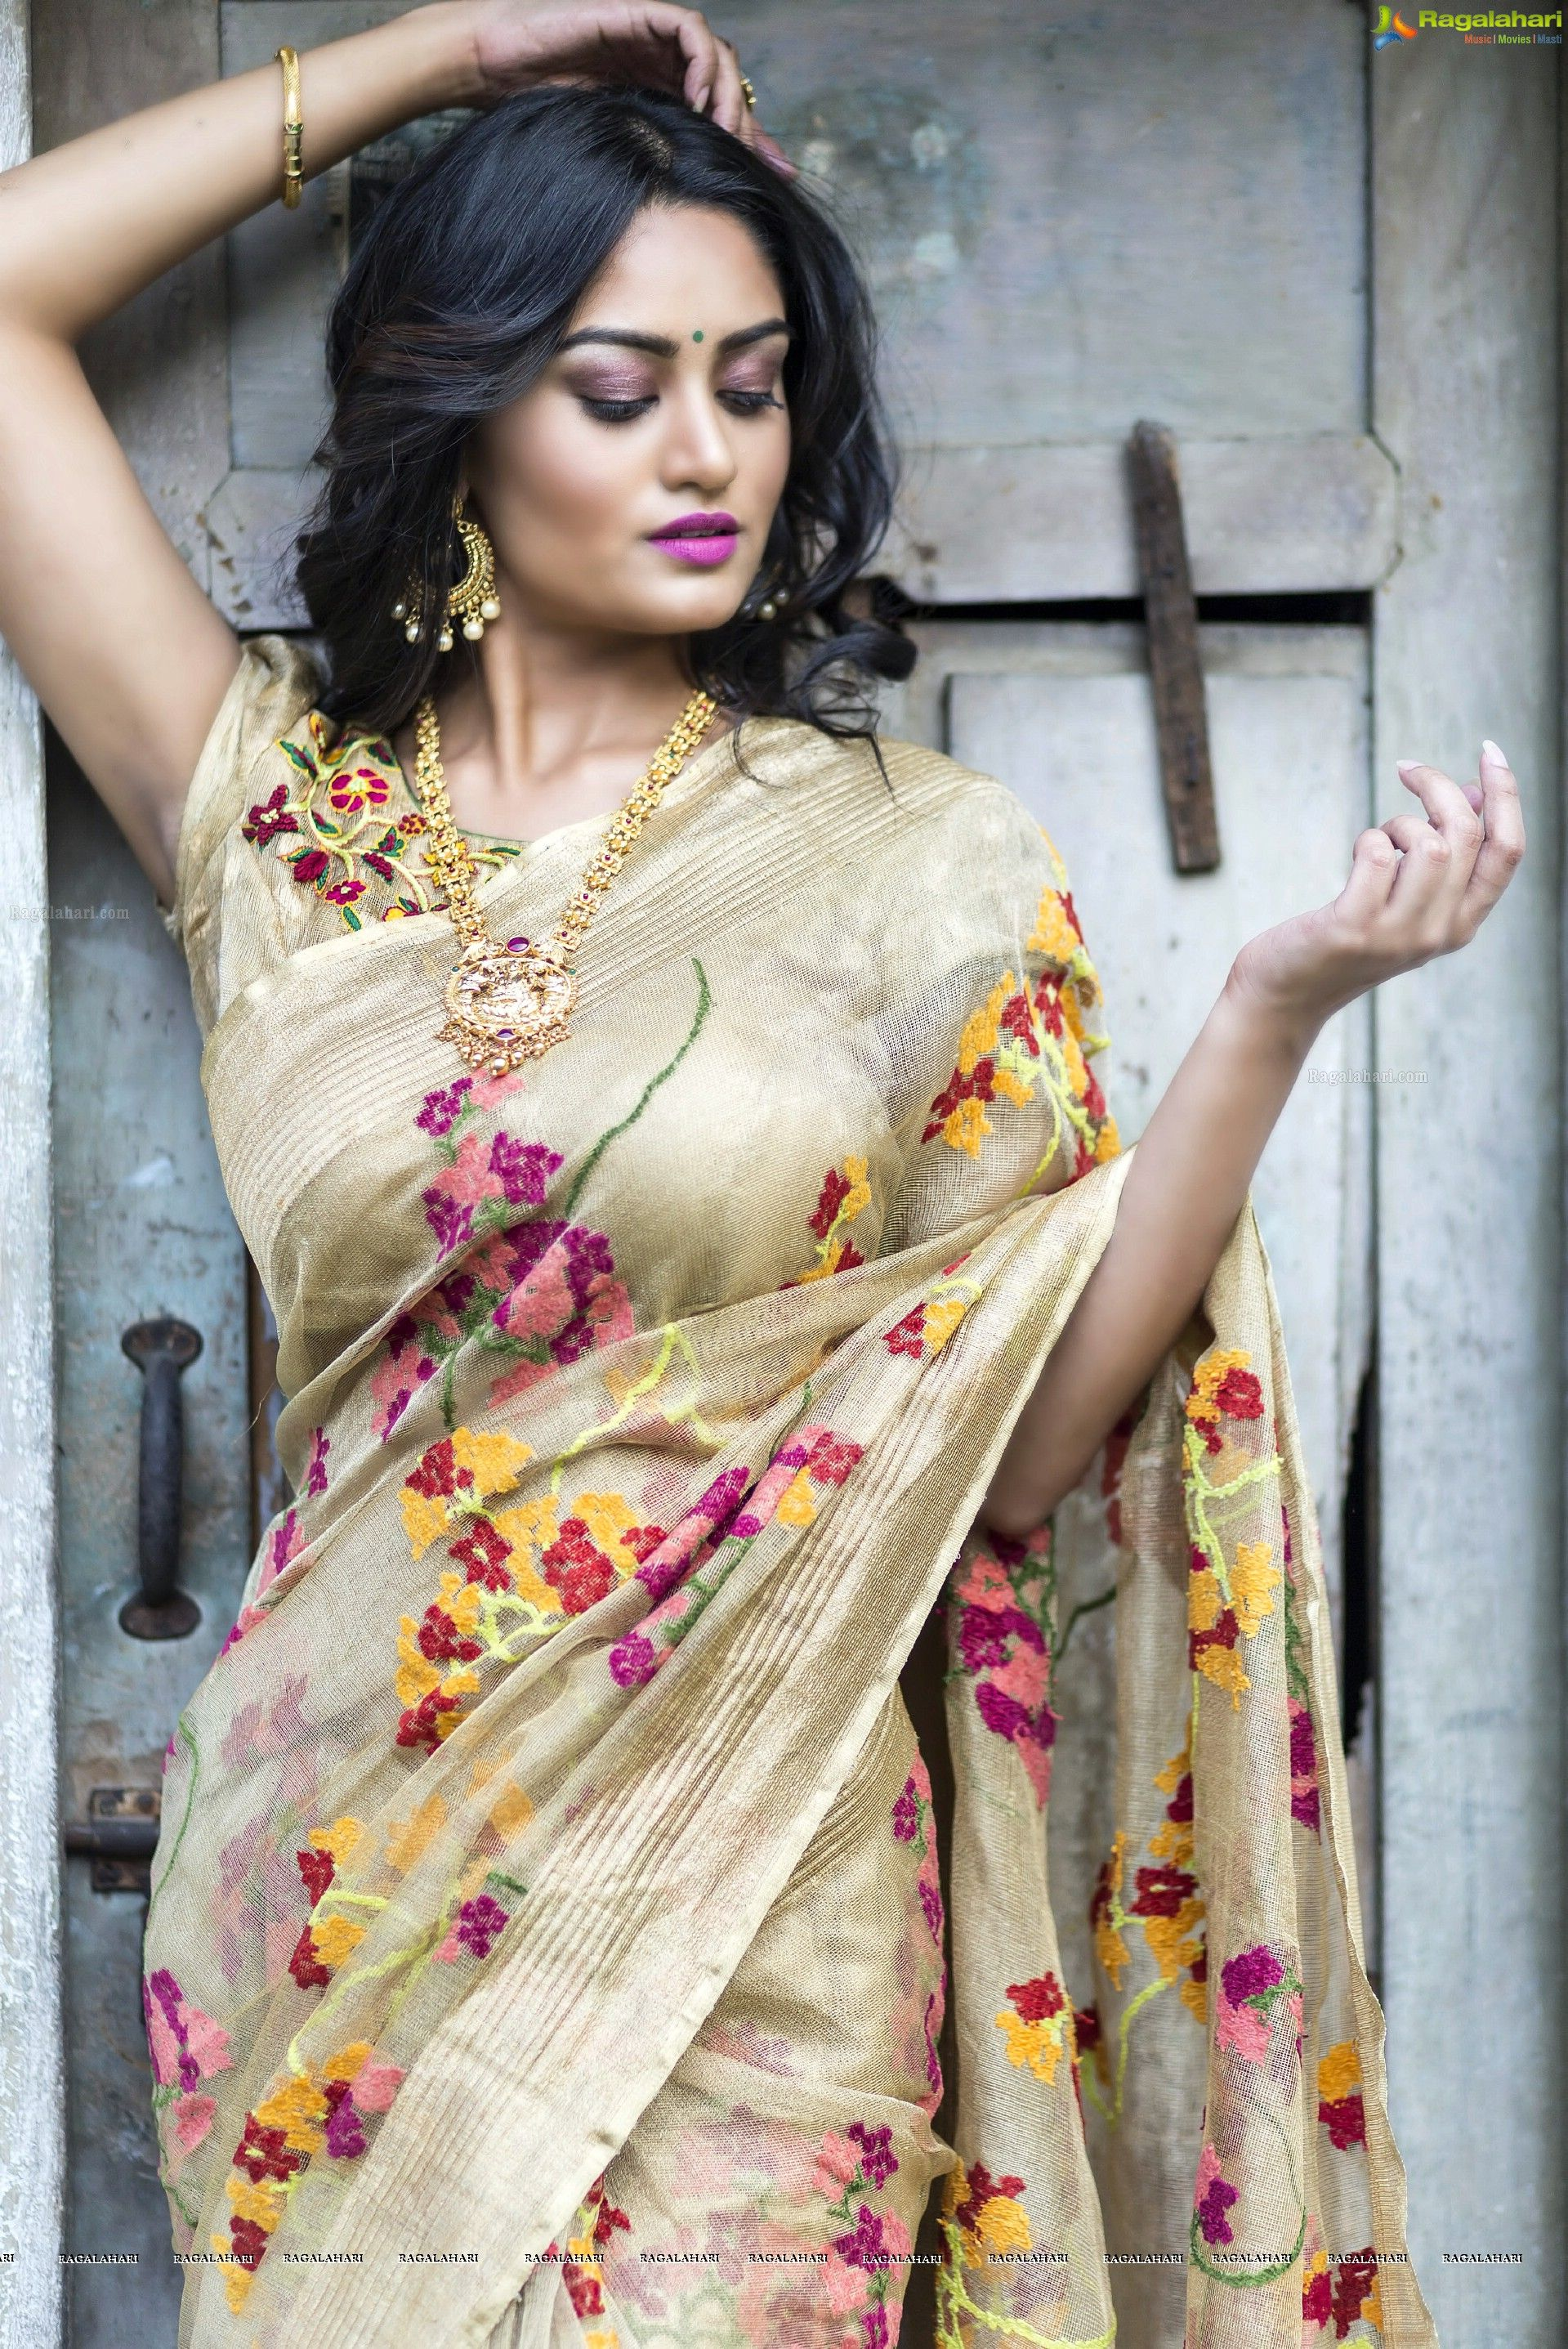 beautycurvy, saree | art | pinterest | saree, curvy and indian sarees